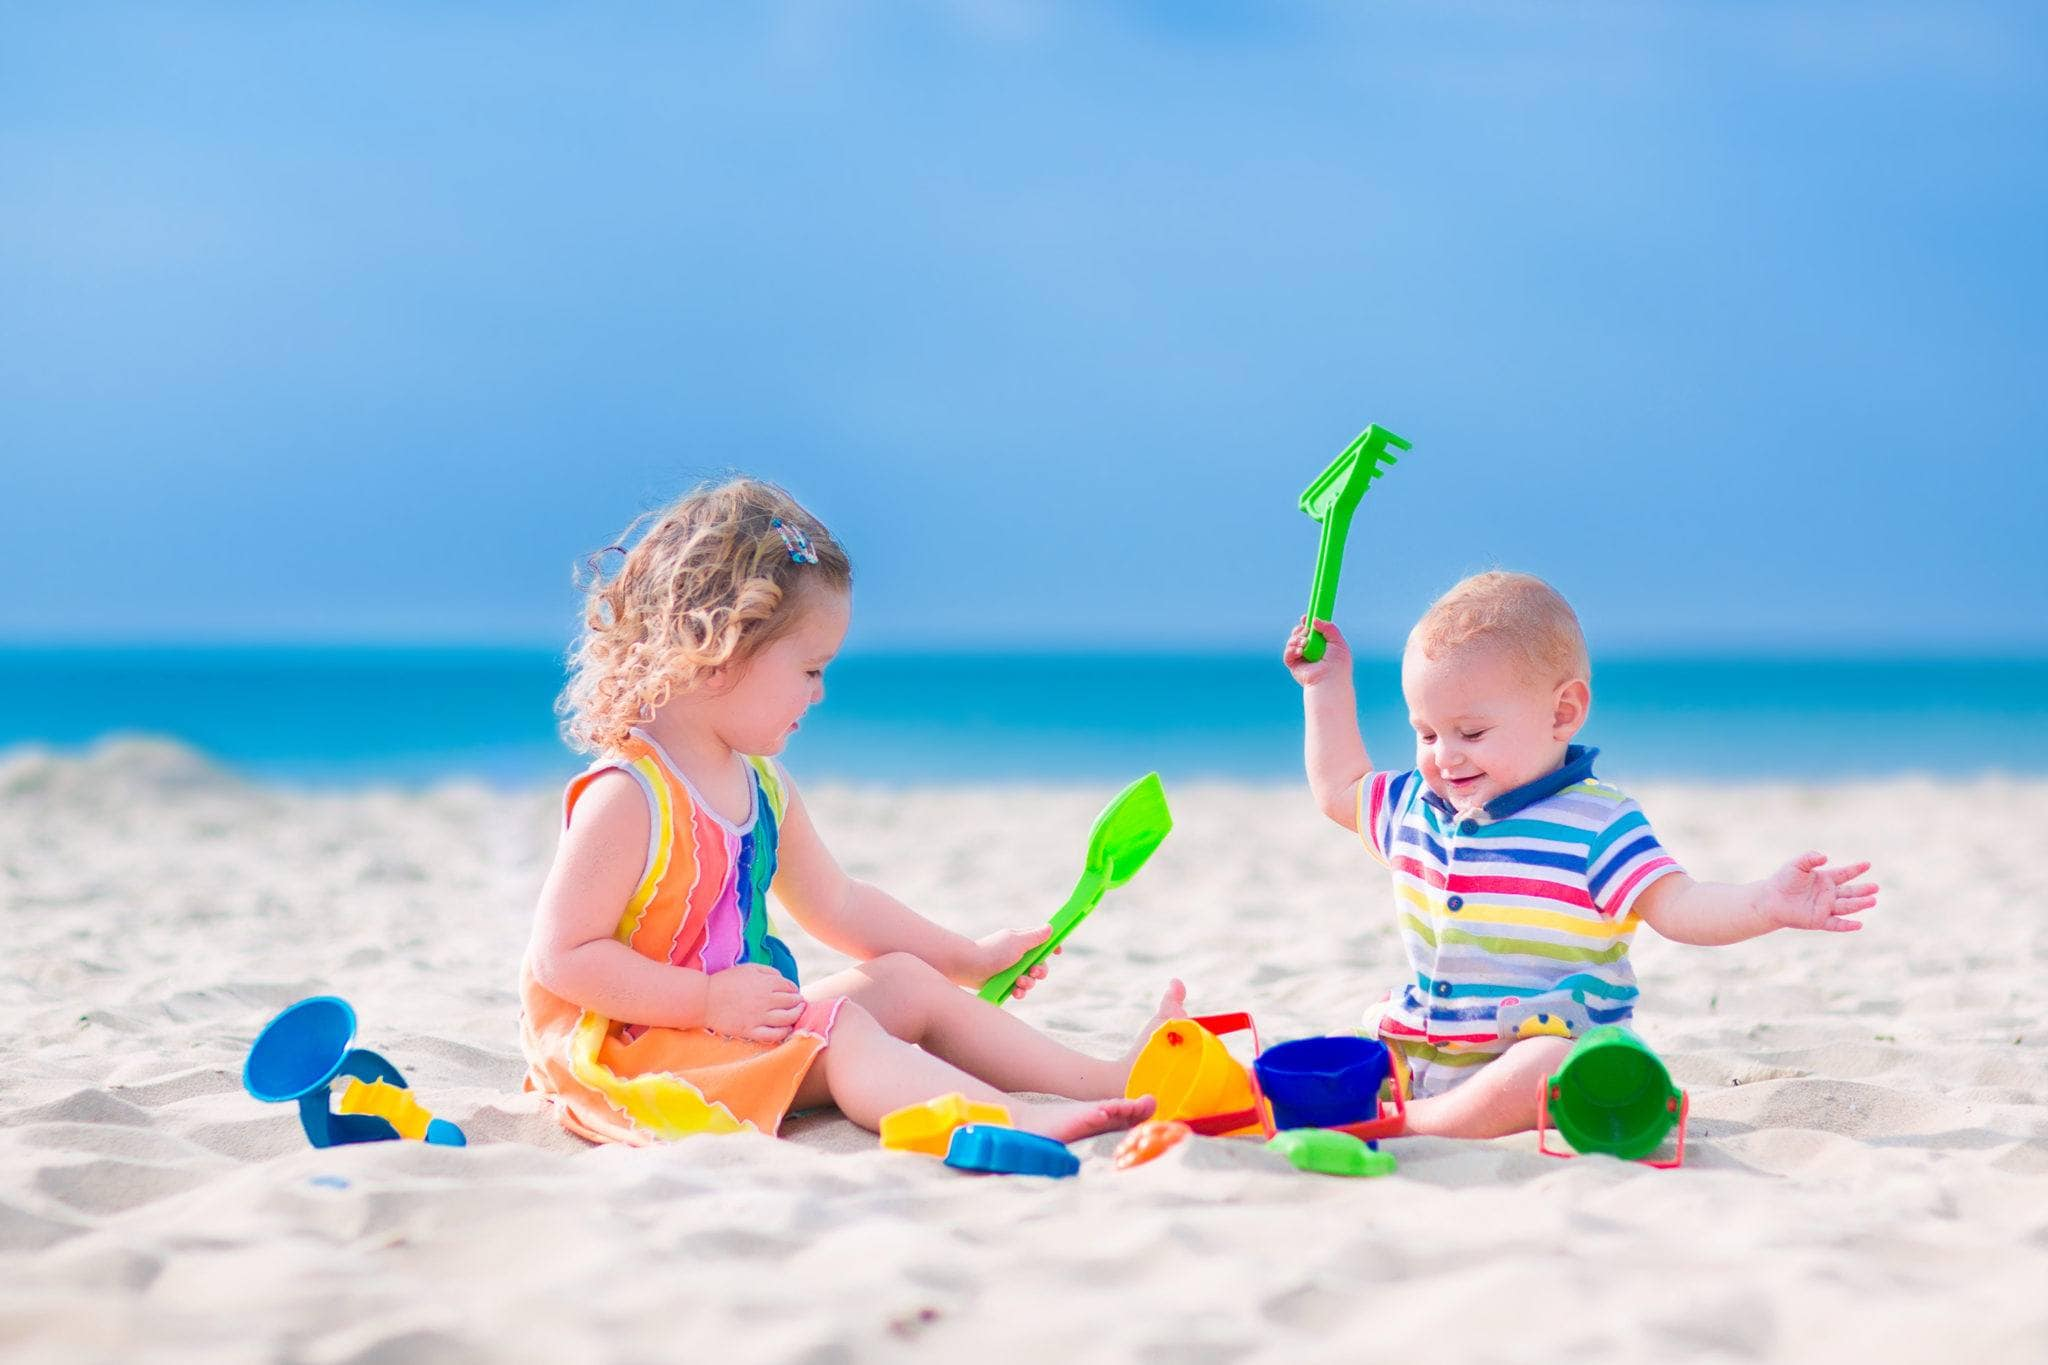 Rent baby gear like cribs, strollers, car seats and even toys for your Cancun vacation from Baja Baby Gear ~ Cancun with Babies and Toddlers